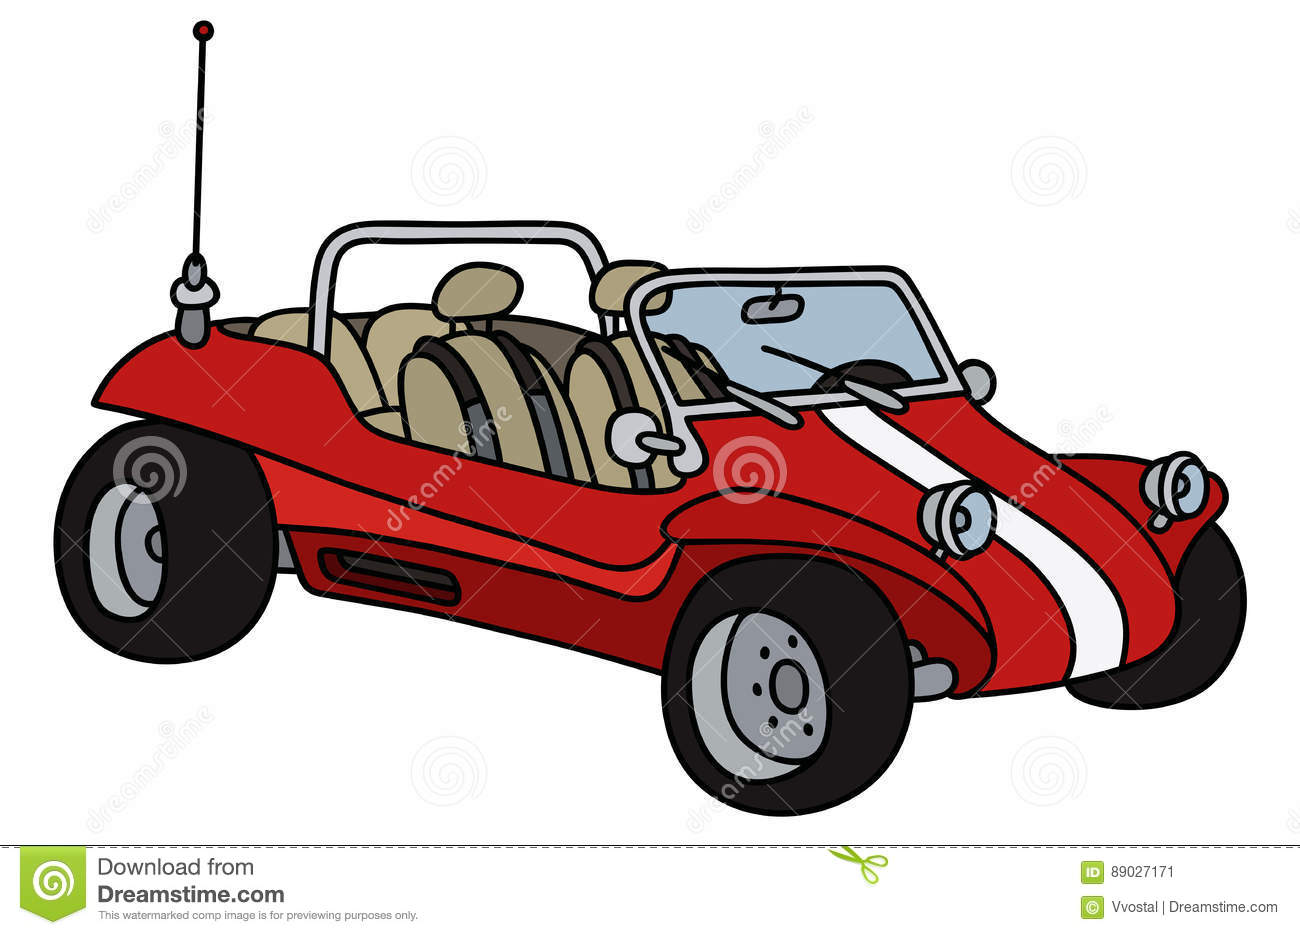 Red dune buggy stock vector  Illustration of cartoon - 89027171